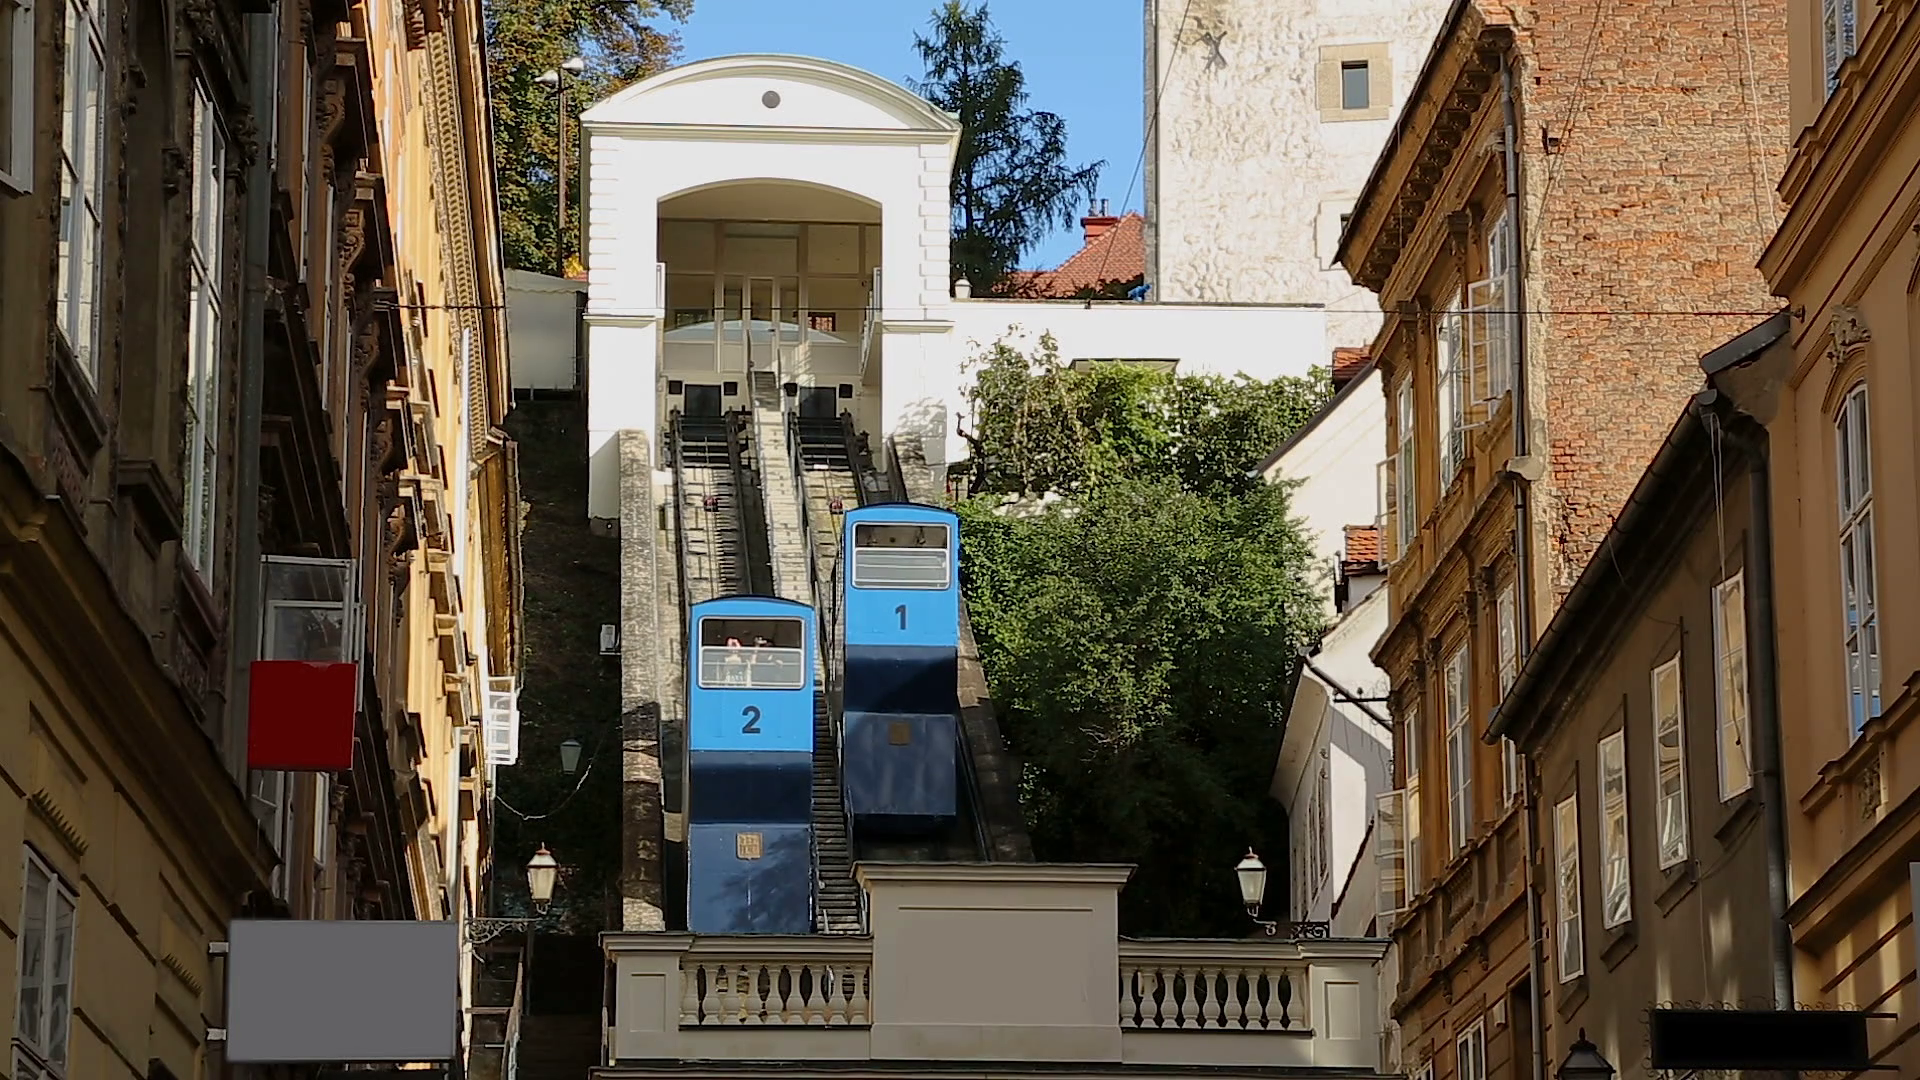 The 129-year old Zagreb Funicular